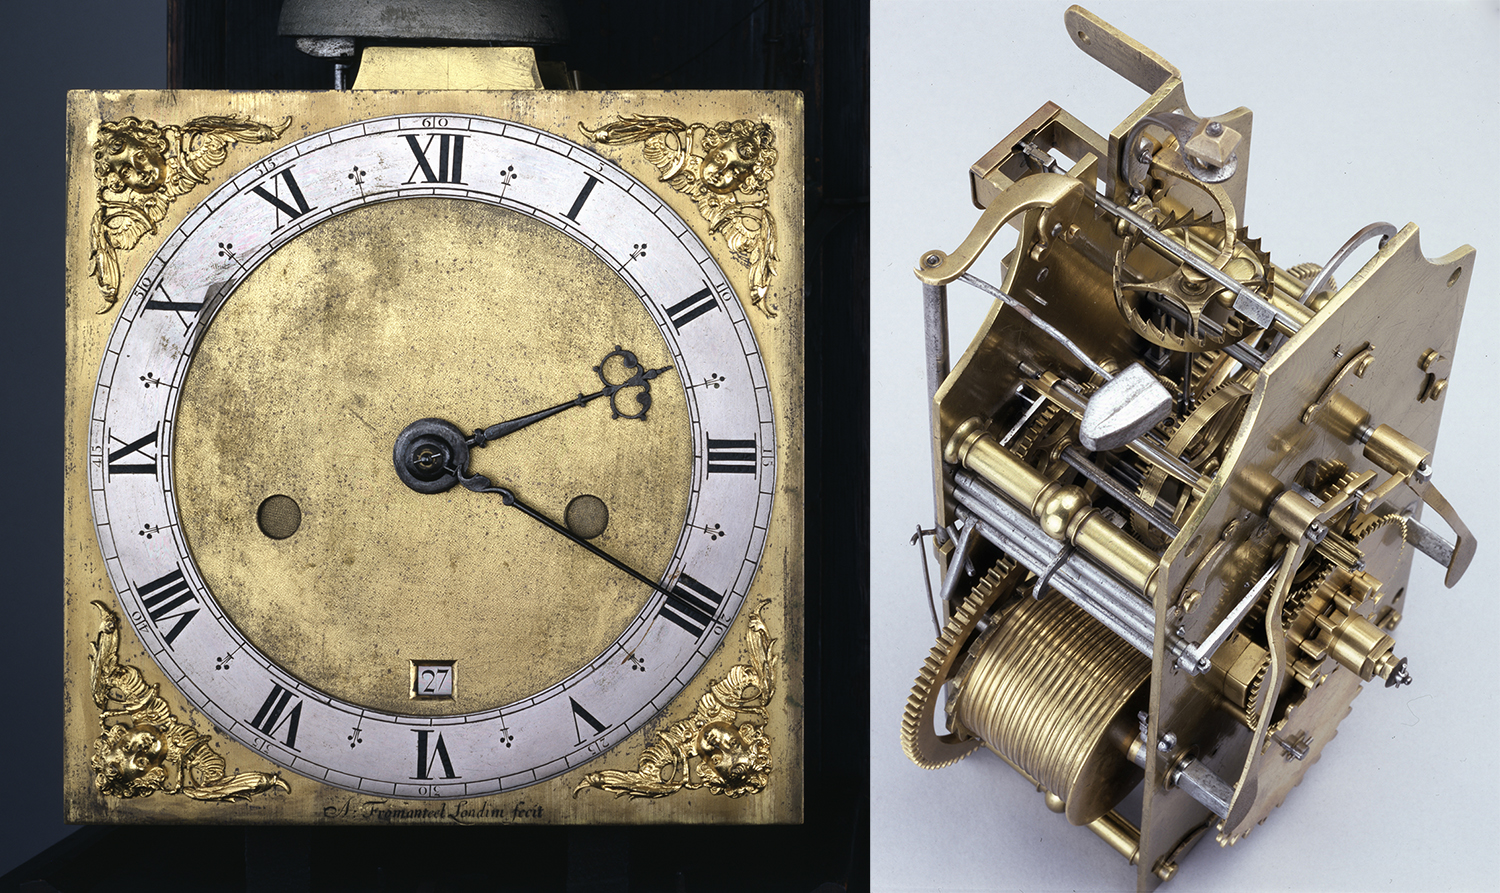 xA-verge-and-crownwheel-escapement_combined.jpg.pagespeed.ic.AnMjYtZ0nv.webp